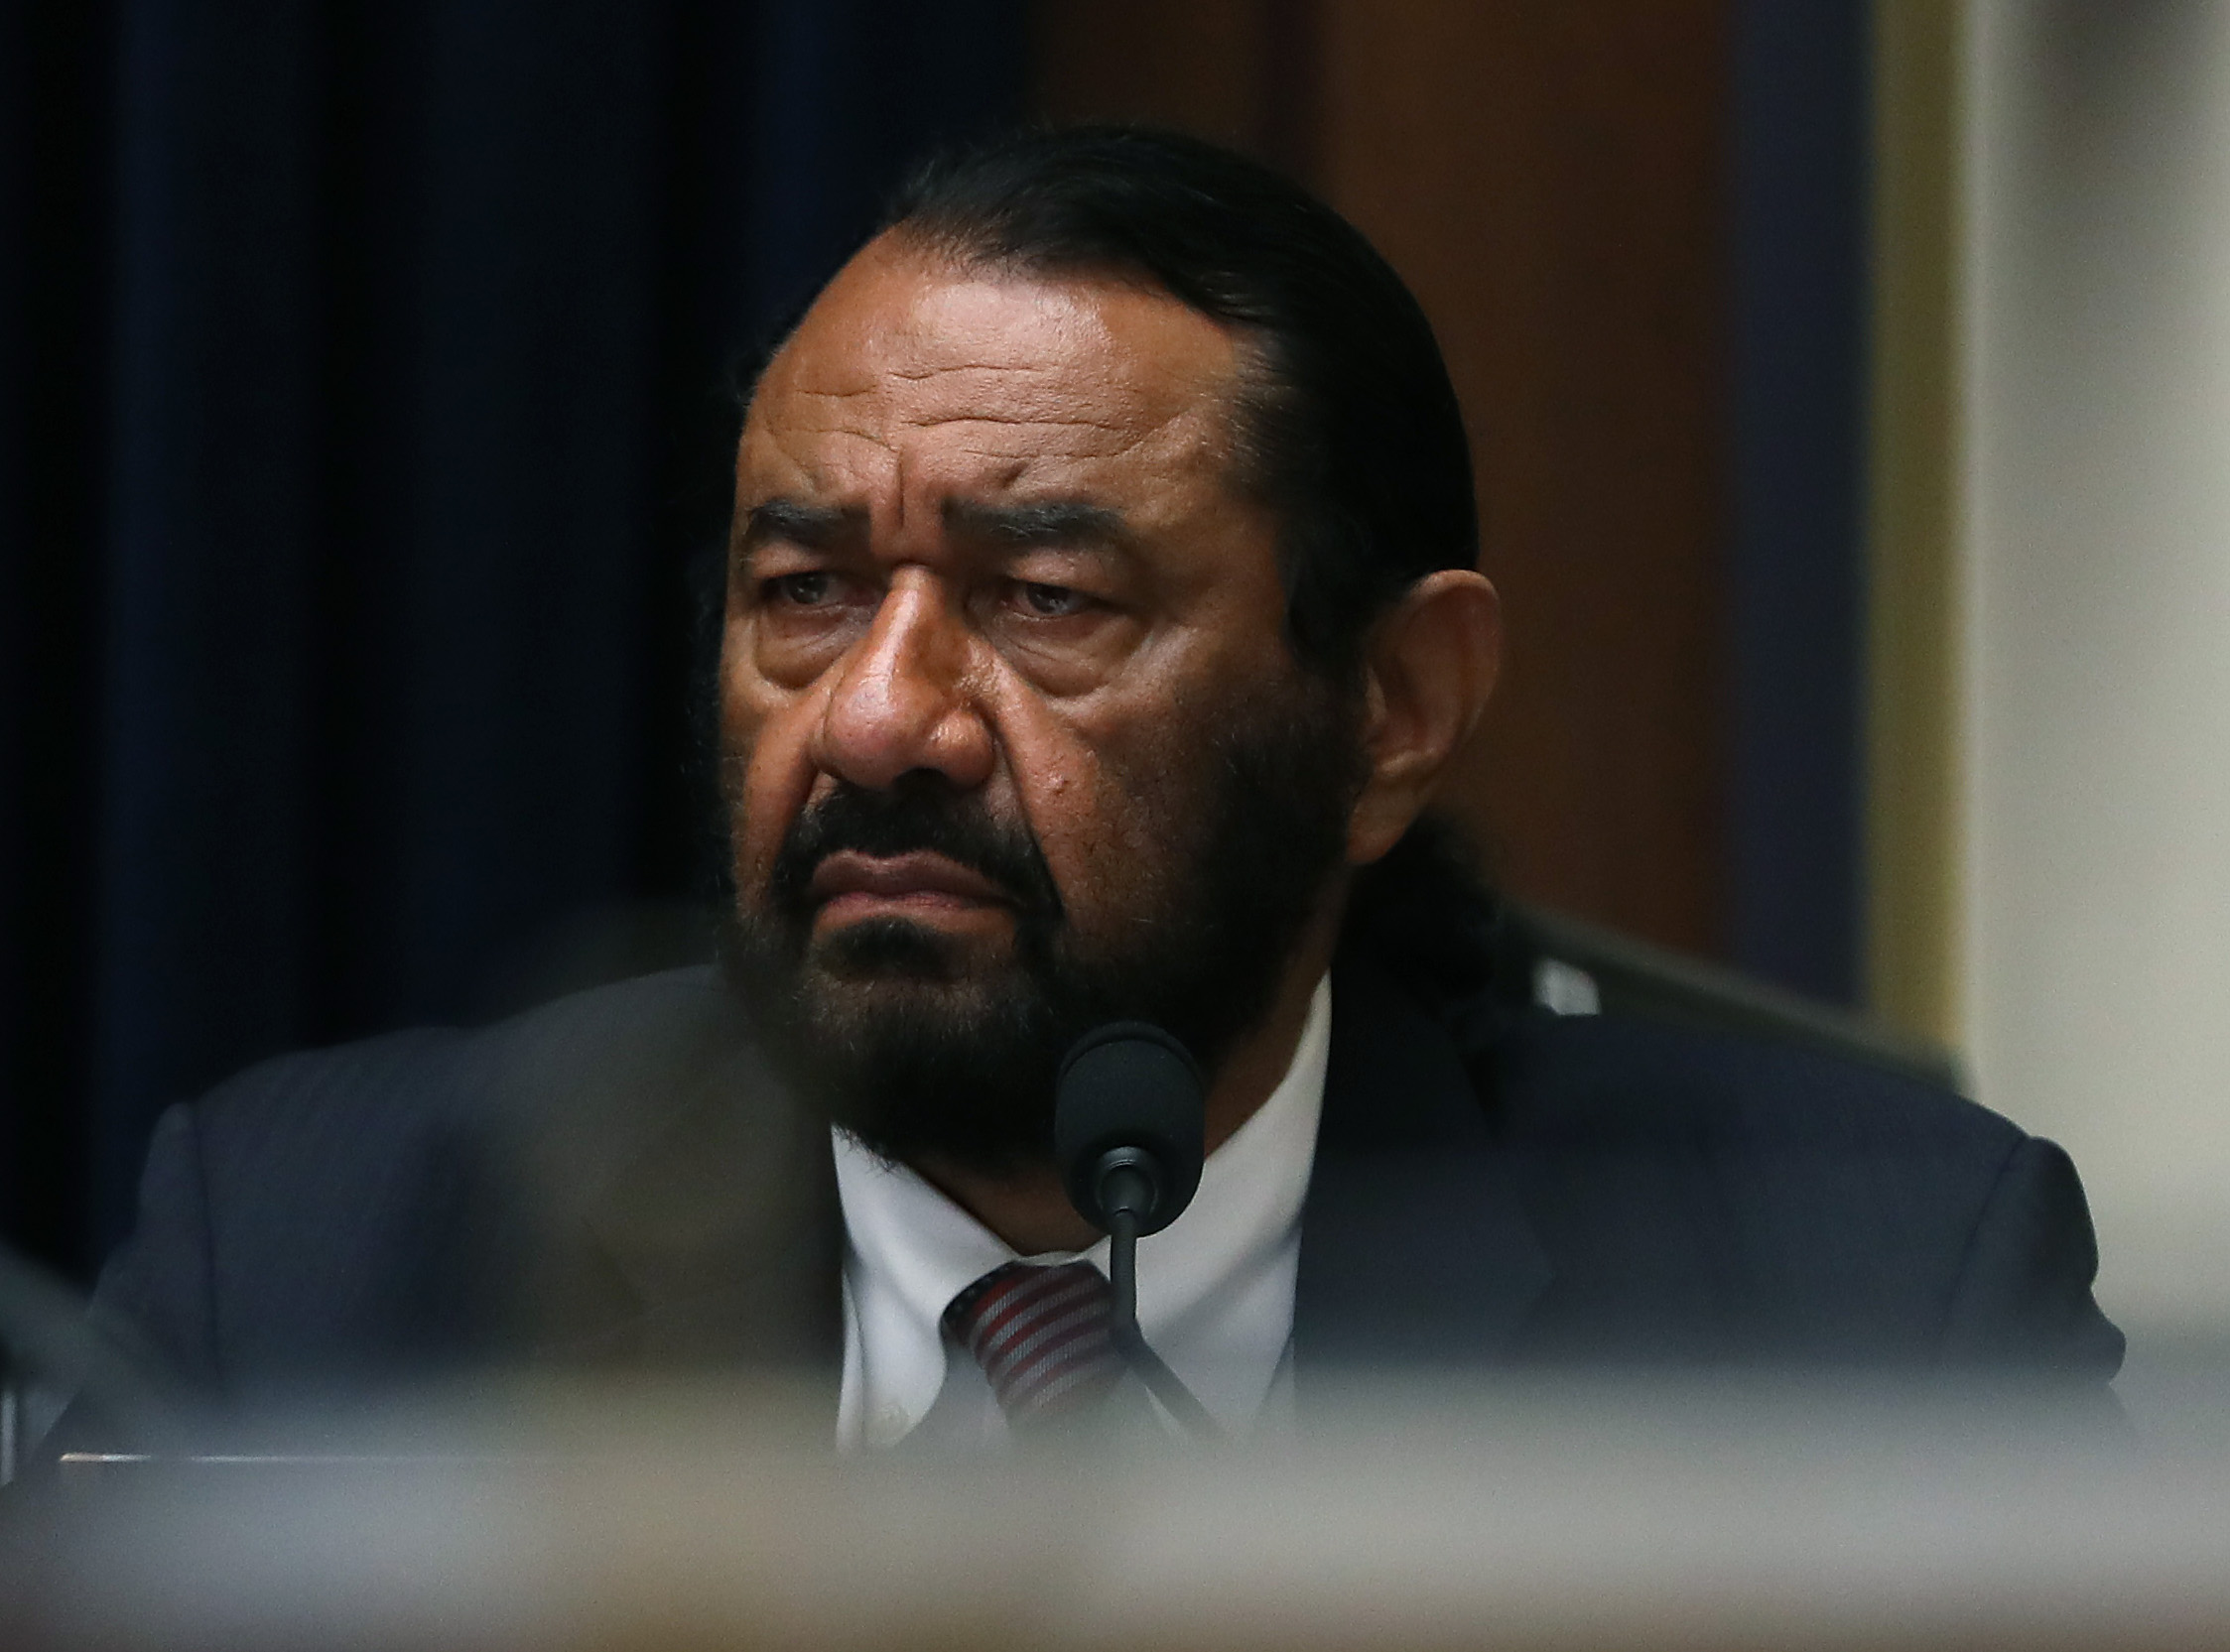 Rep. Al Green to Democrats: 'The Public Is Going to Turn on Us' If We Don't Impeach Trump